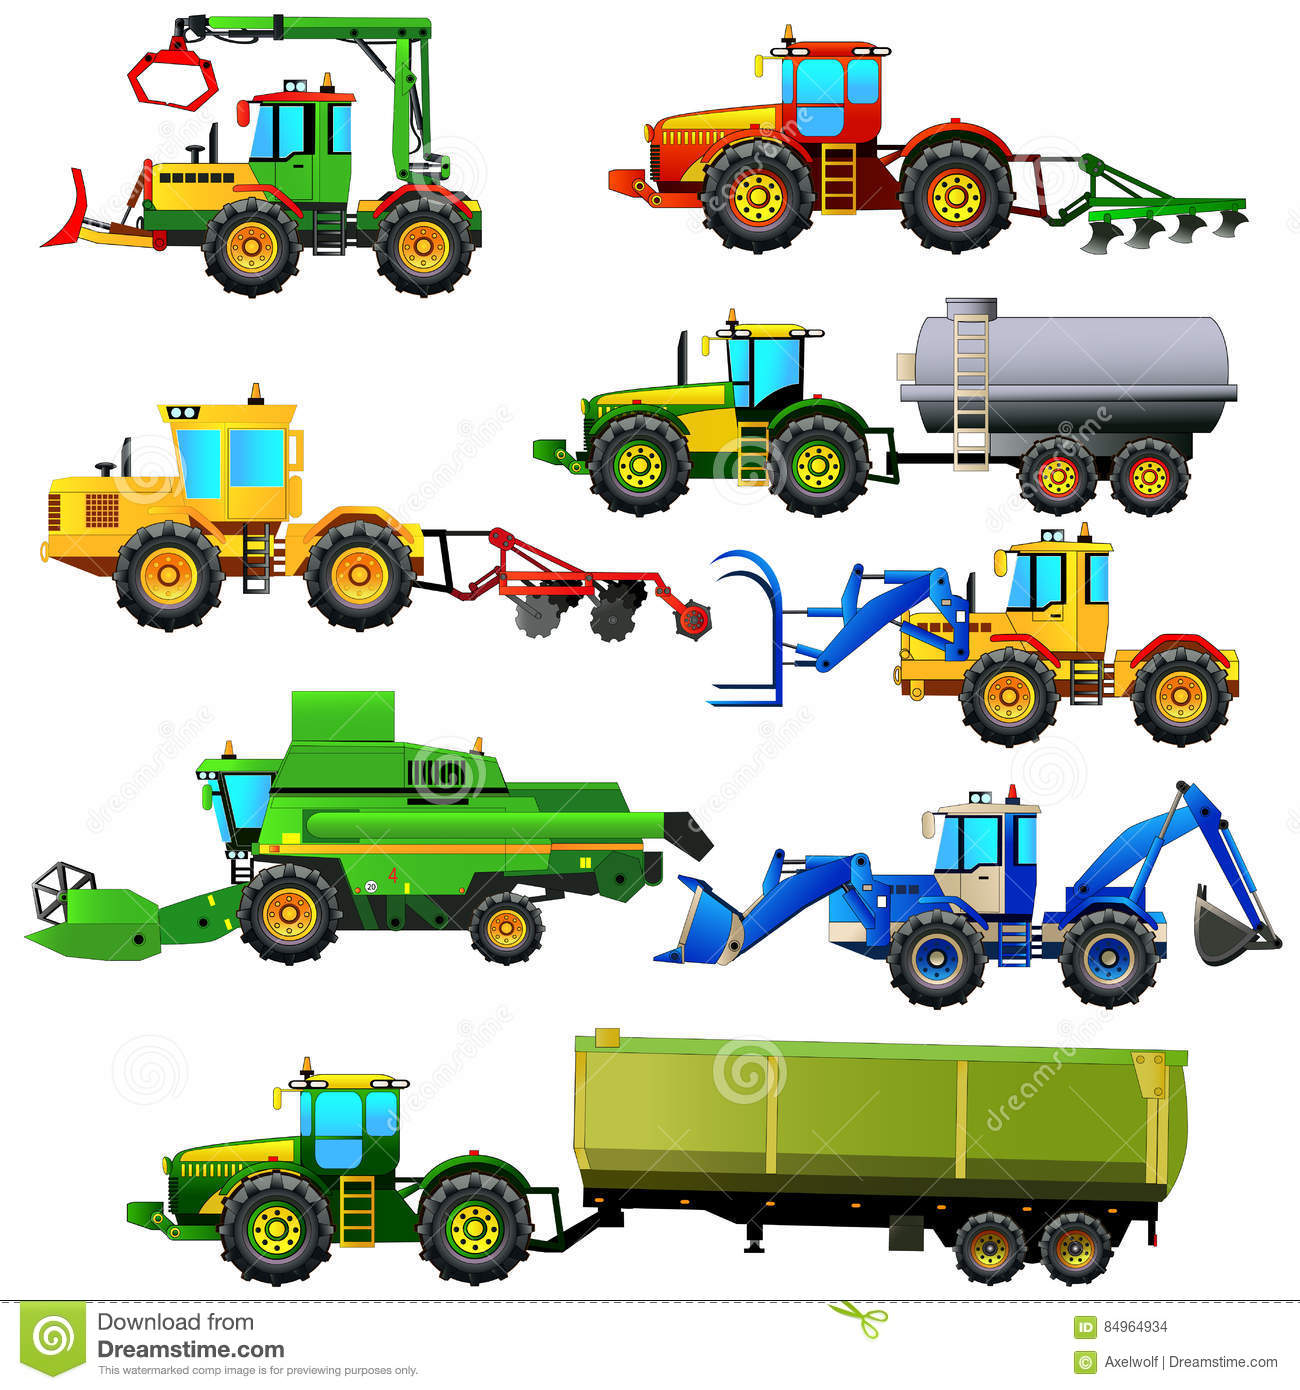 Agricultural Machinery Design : Vector set of agricultural vehicles and farm machines